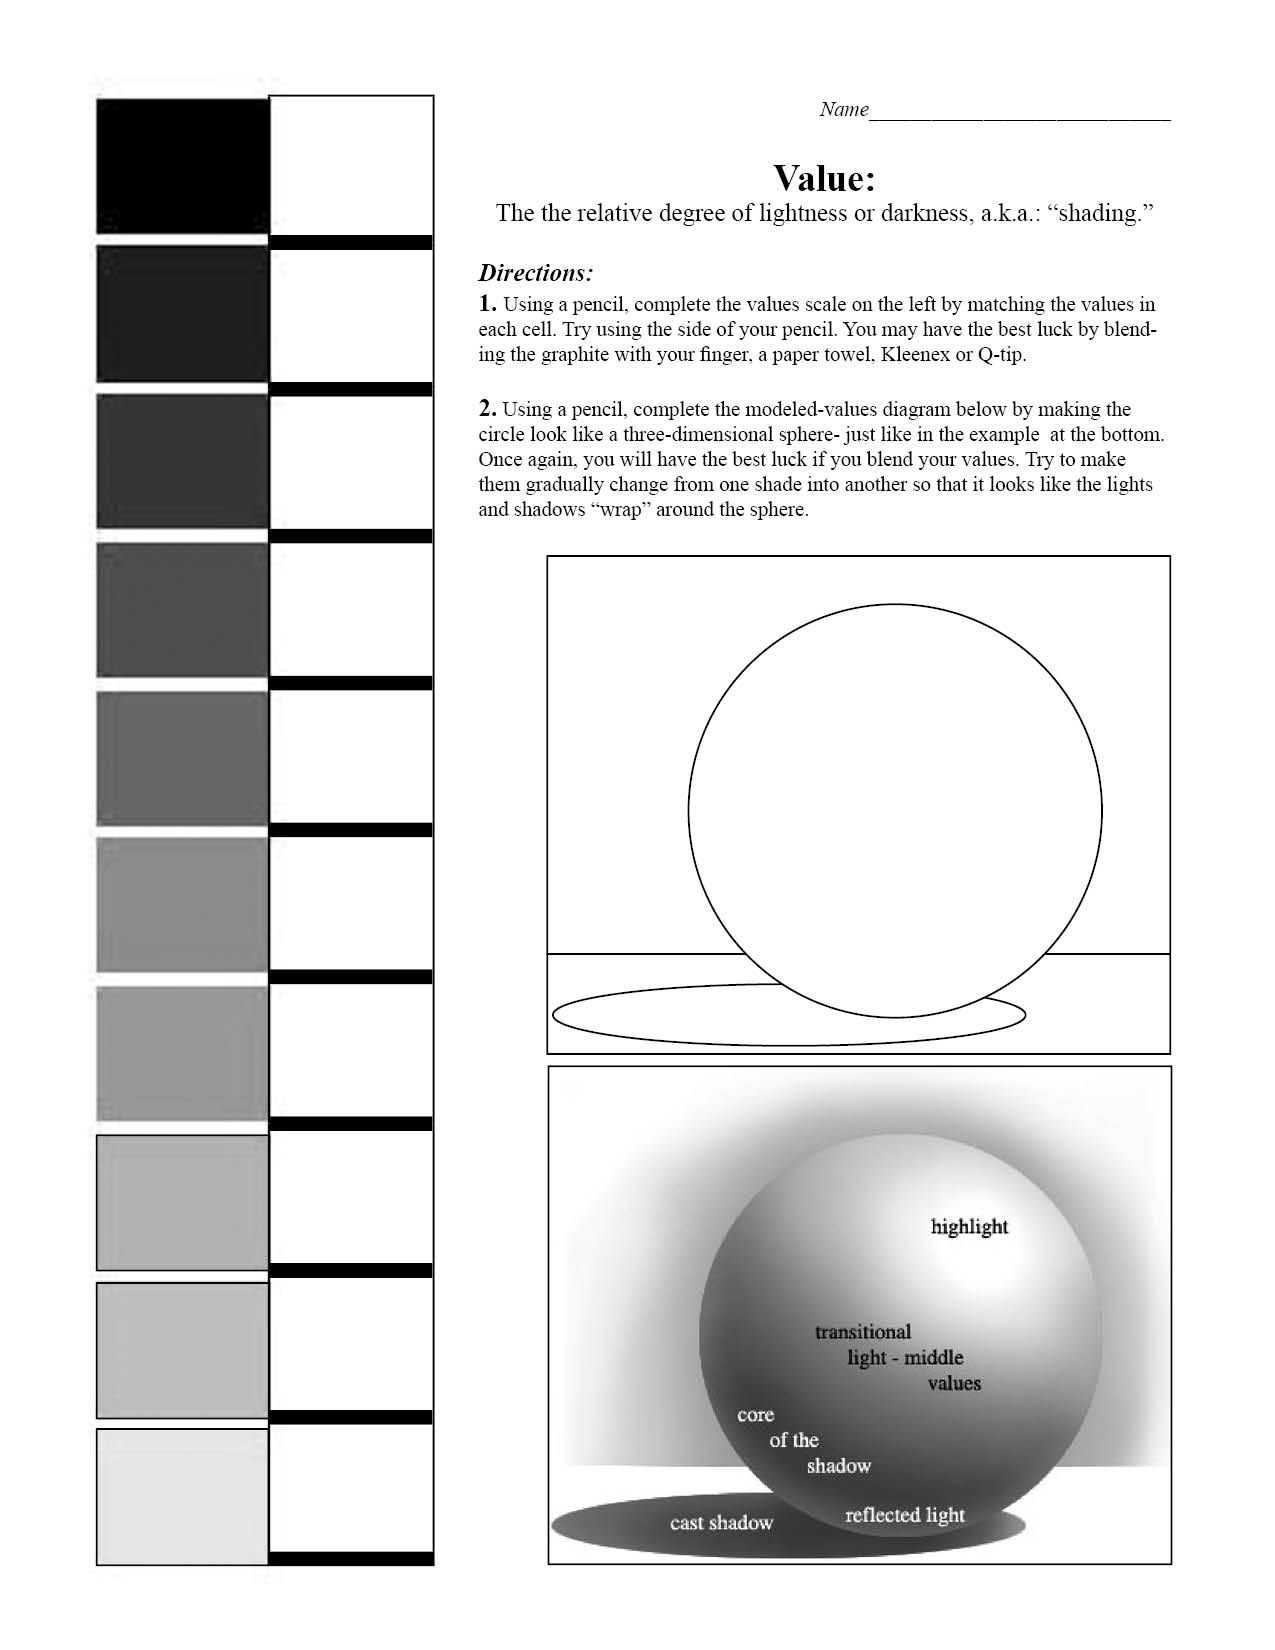 Story Elements Worksheet Pdf as Well as Value Scale and Sphere Worksheet 7th Grade Art Blending Value